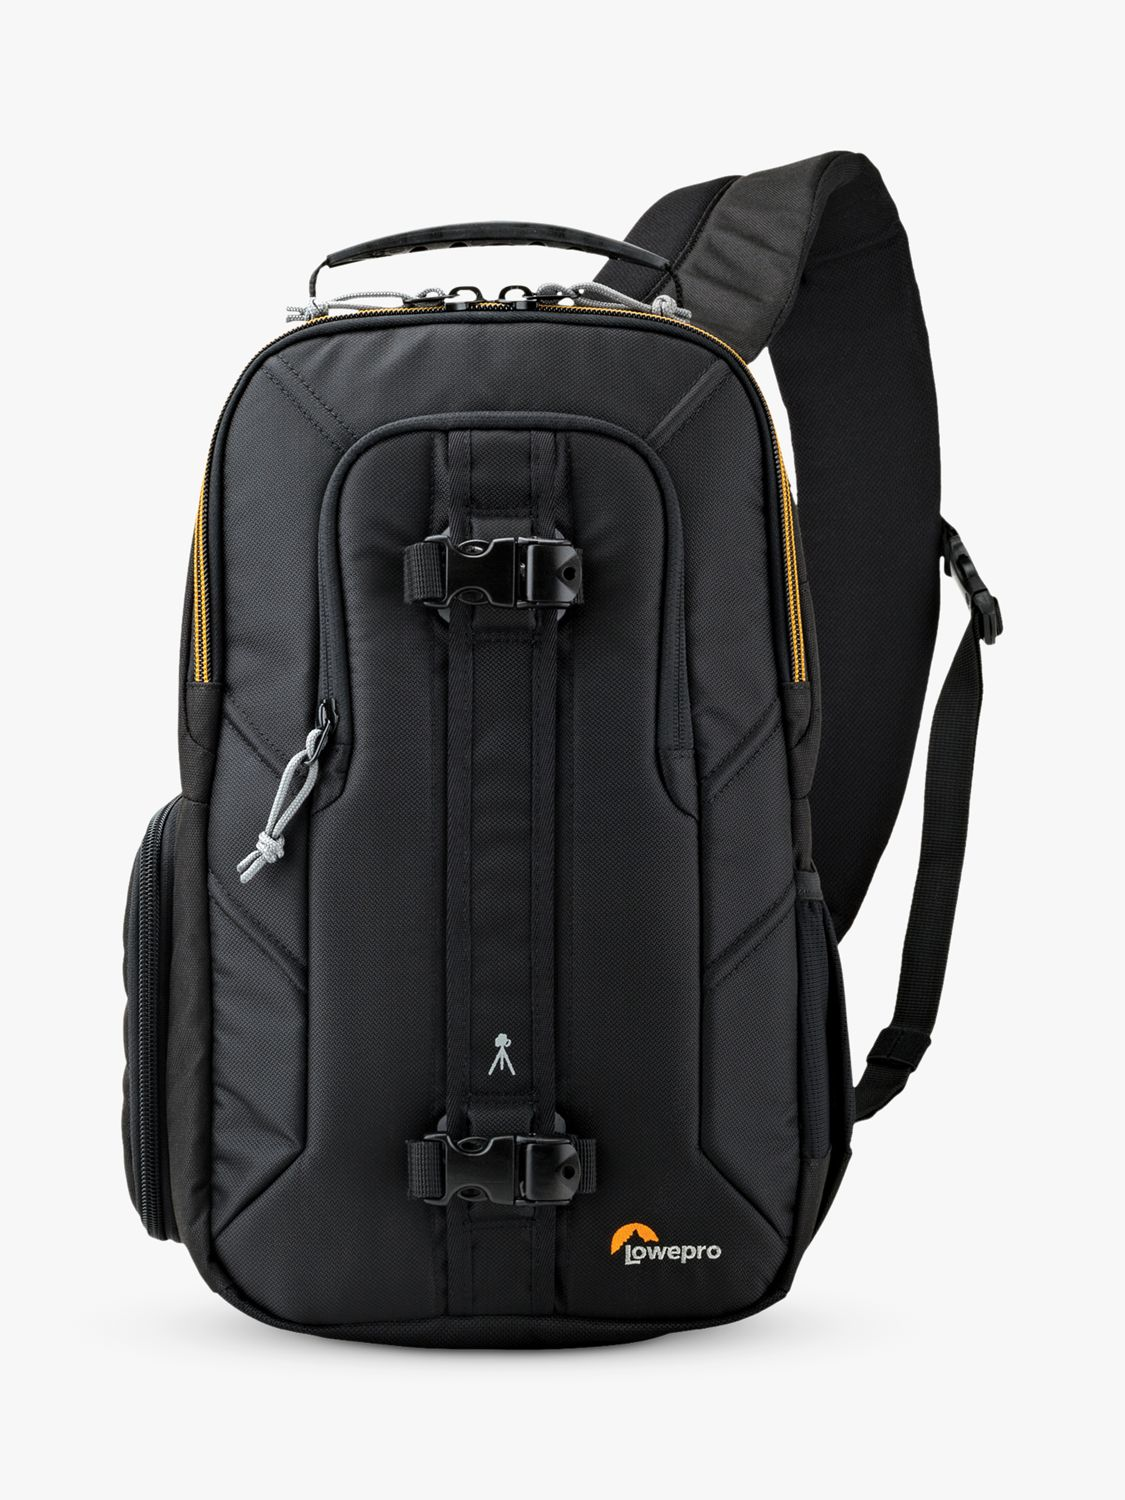 Lowepro Lowepro Slingshot Edge 150 AW Camera and Tablet Backpack, Black